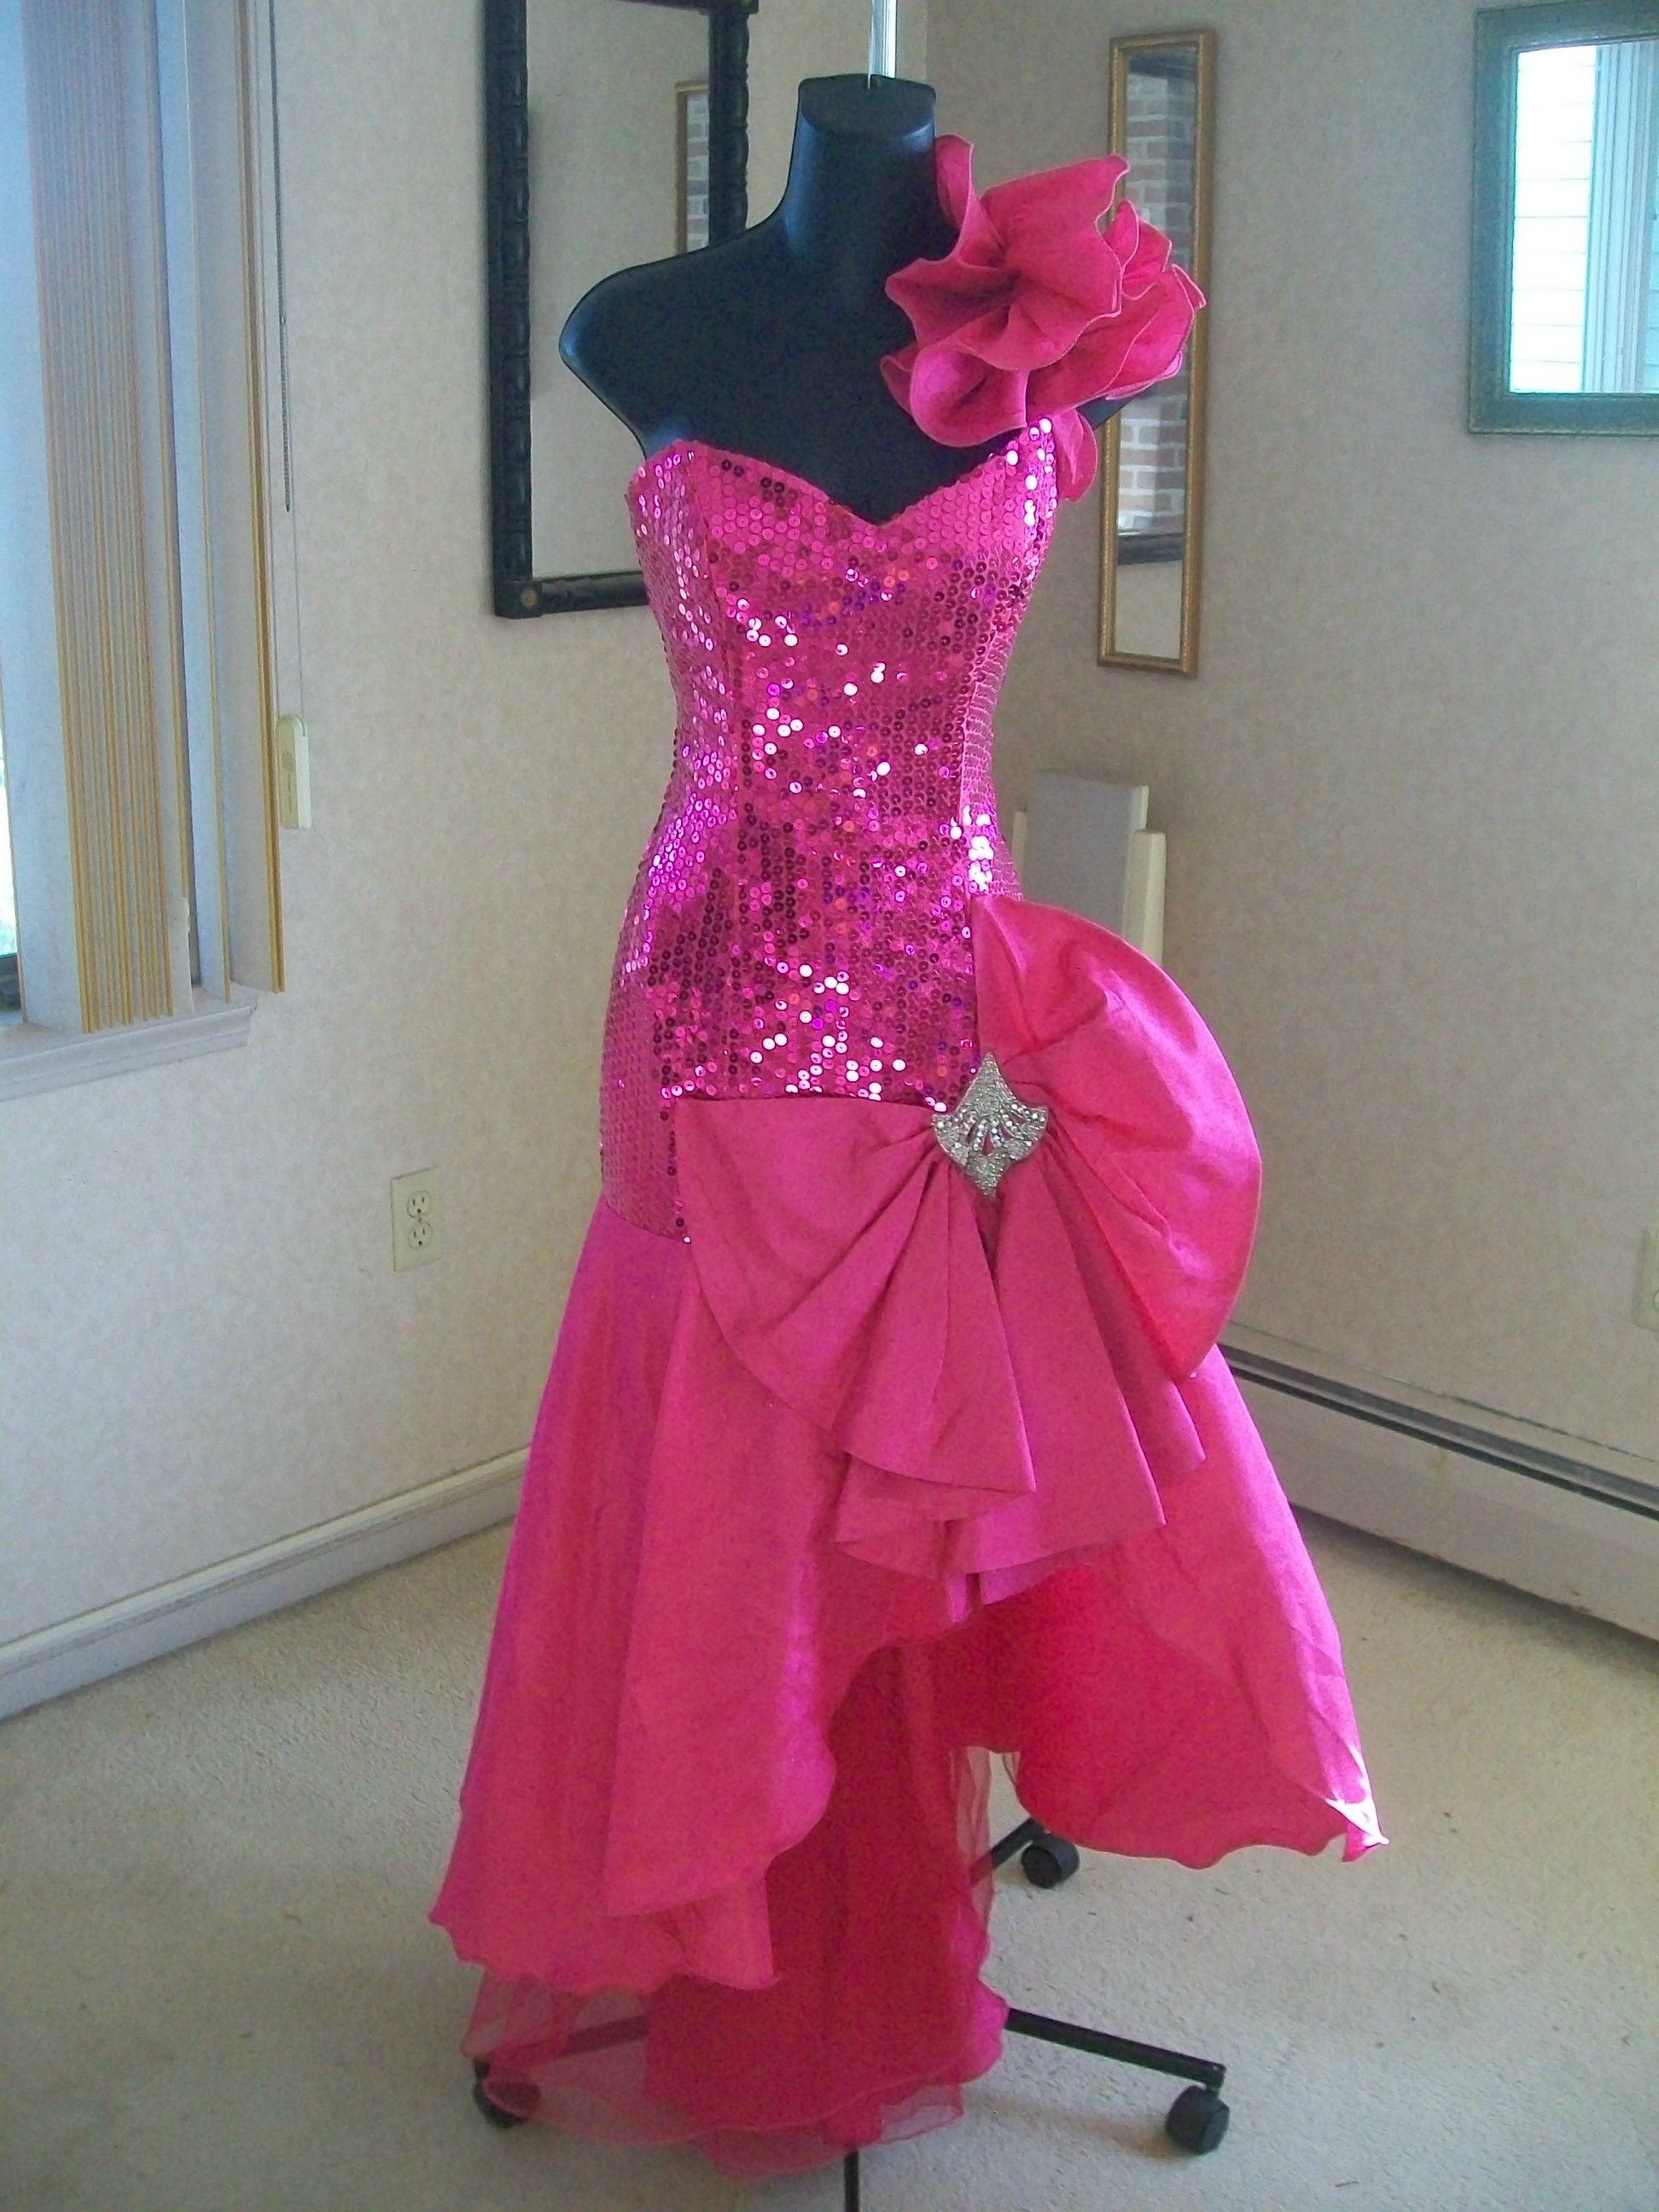 VINTAGE 80s PROM PARTY DRESS COME VISIT ME http://cgi.ebay.com/ws ...